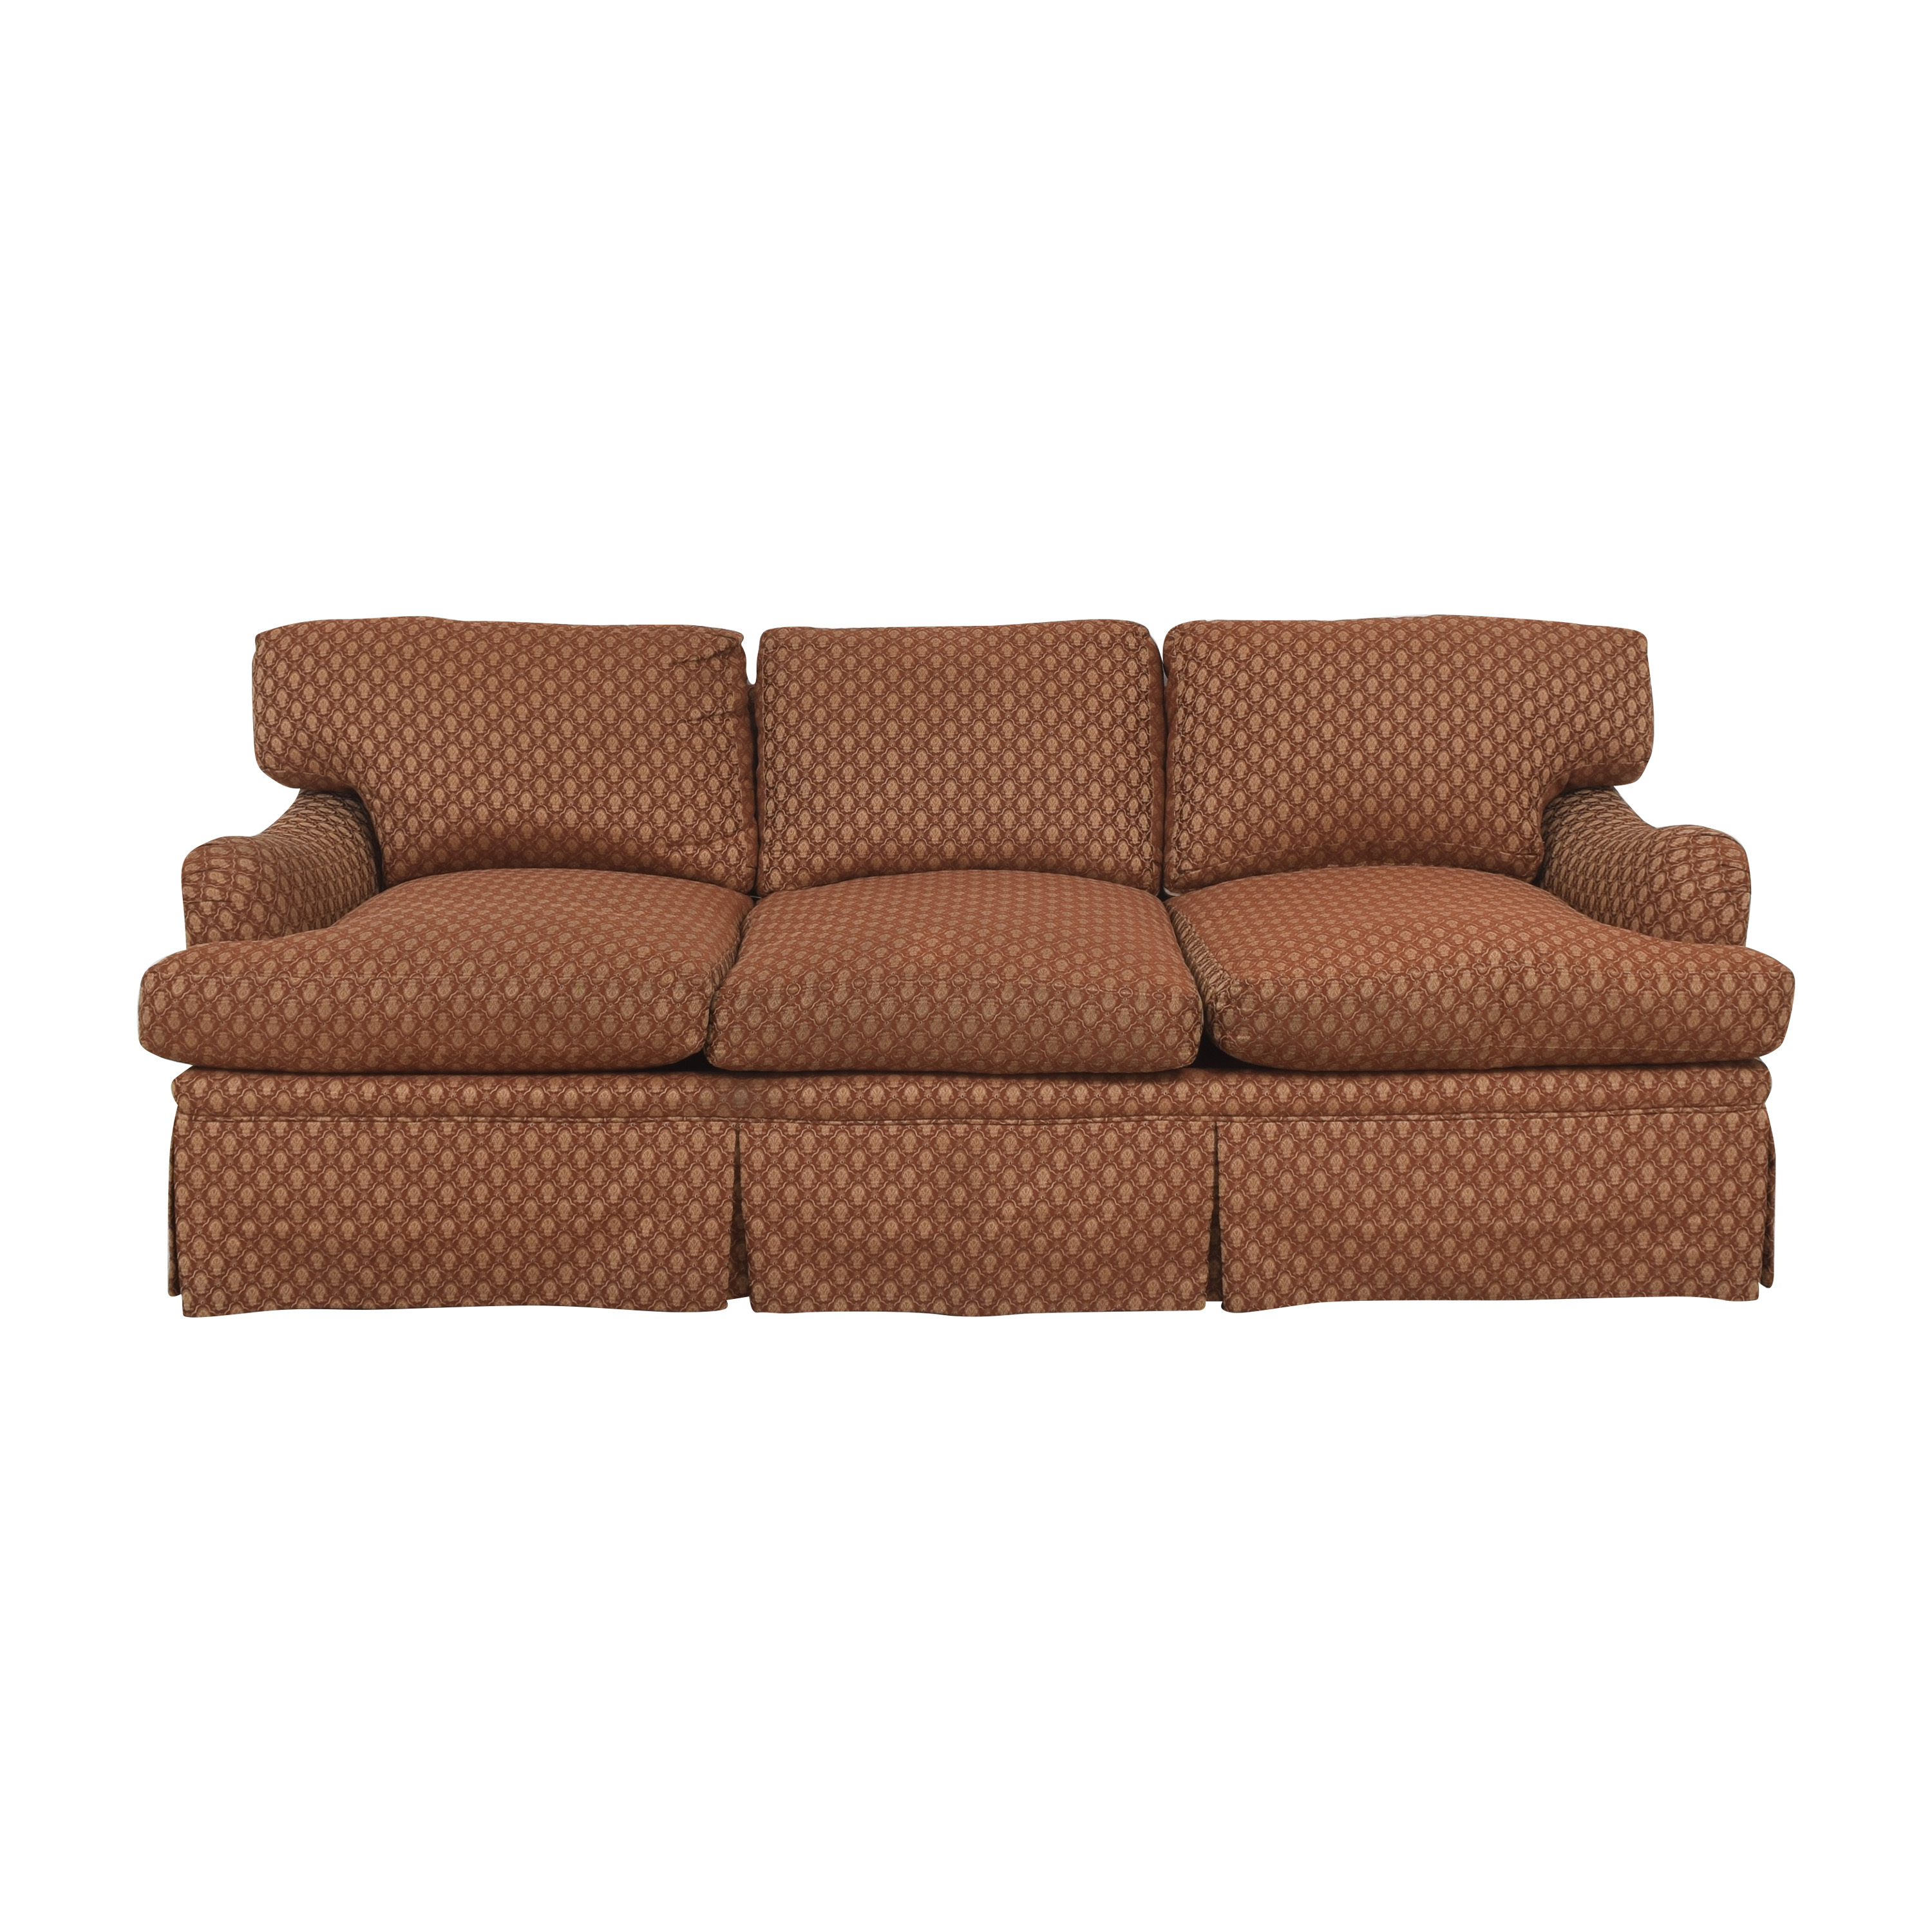 buy Three Cushion Skirted Sofa with Pillows  Classic Sofas